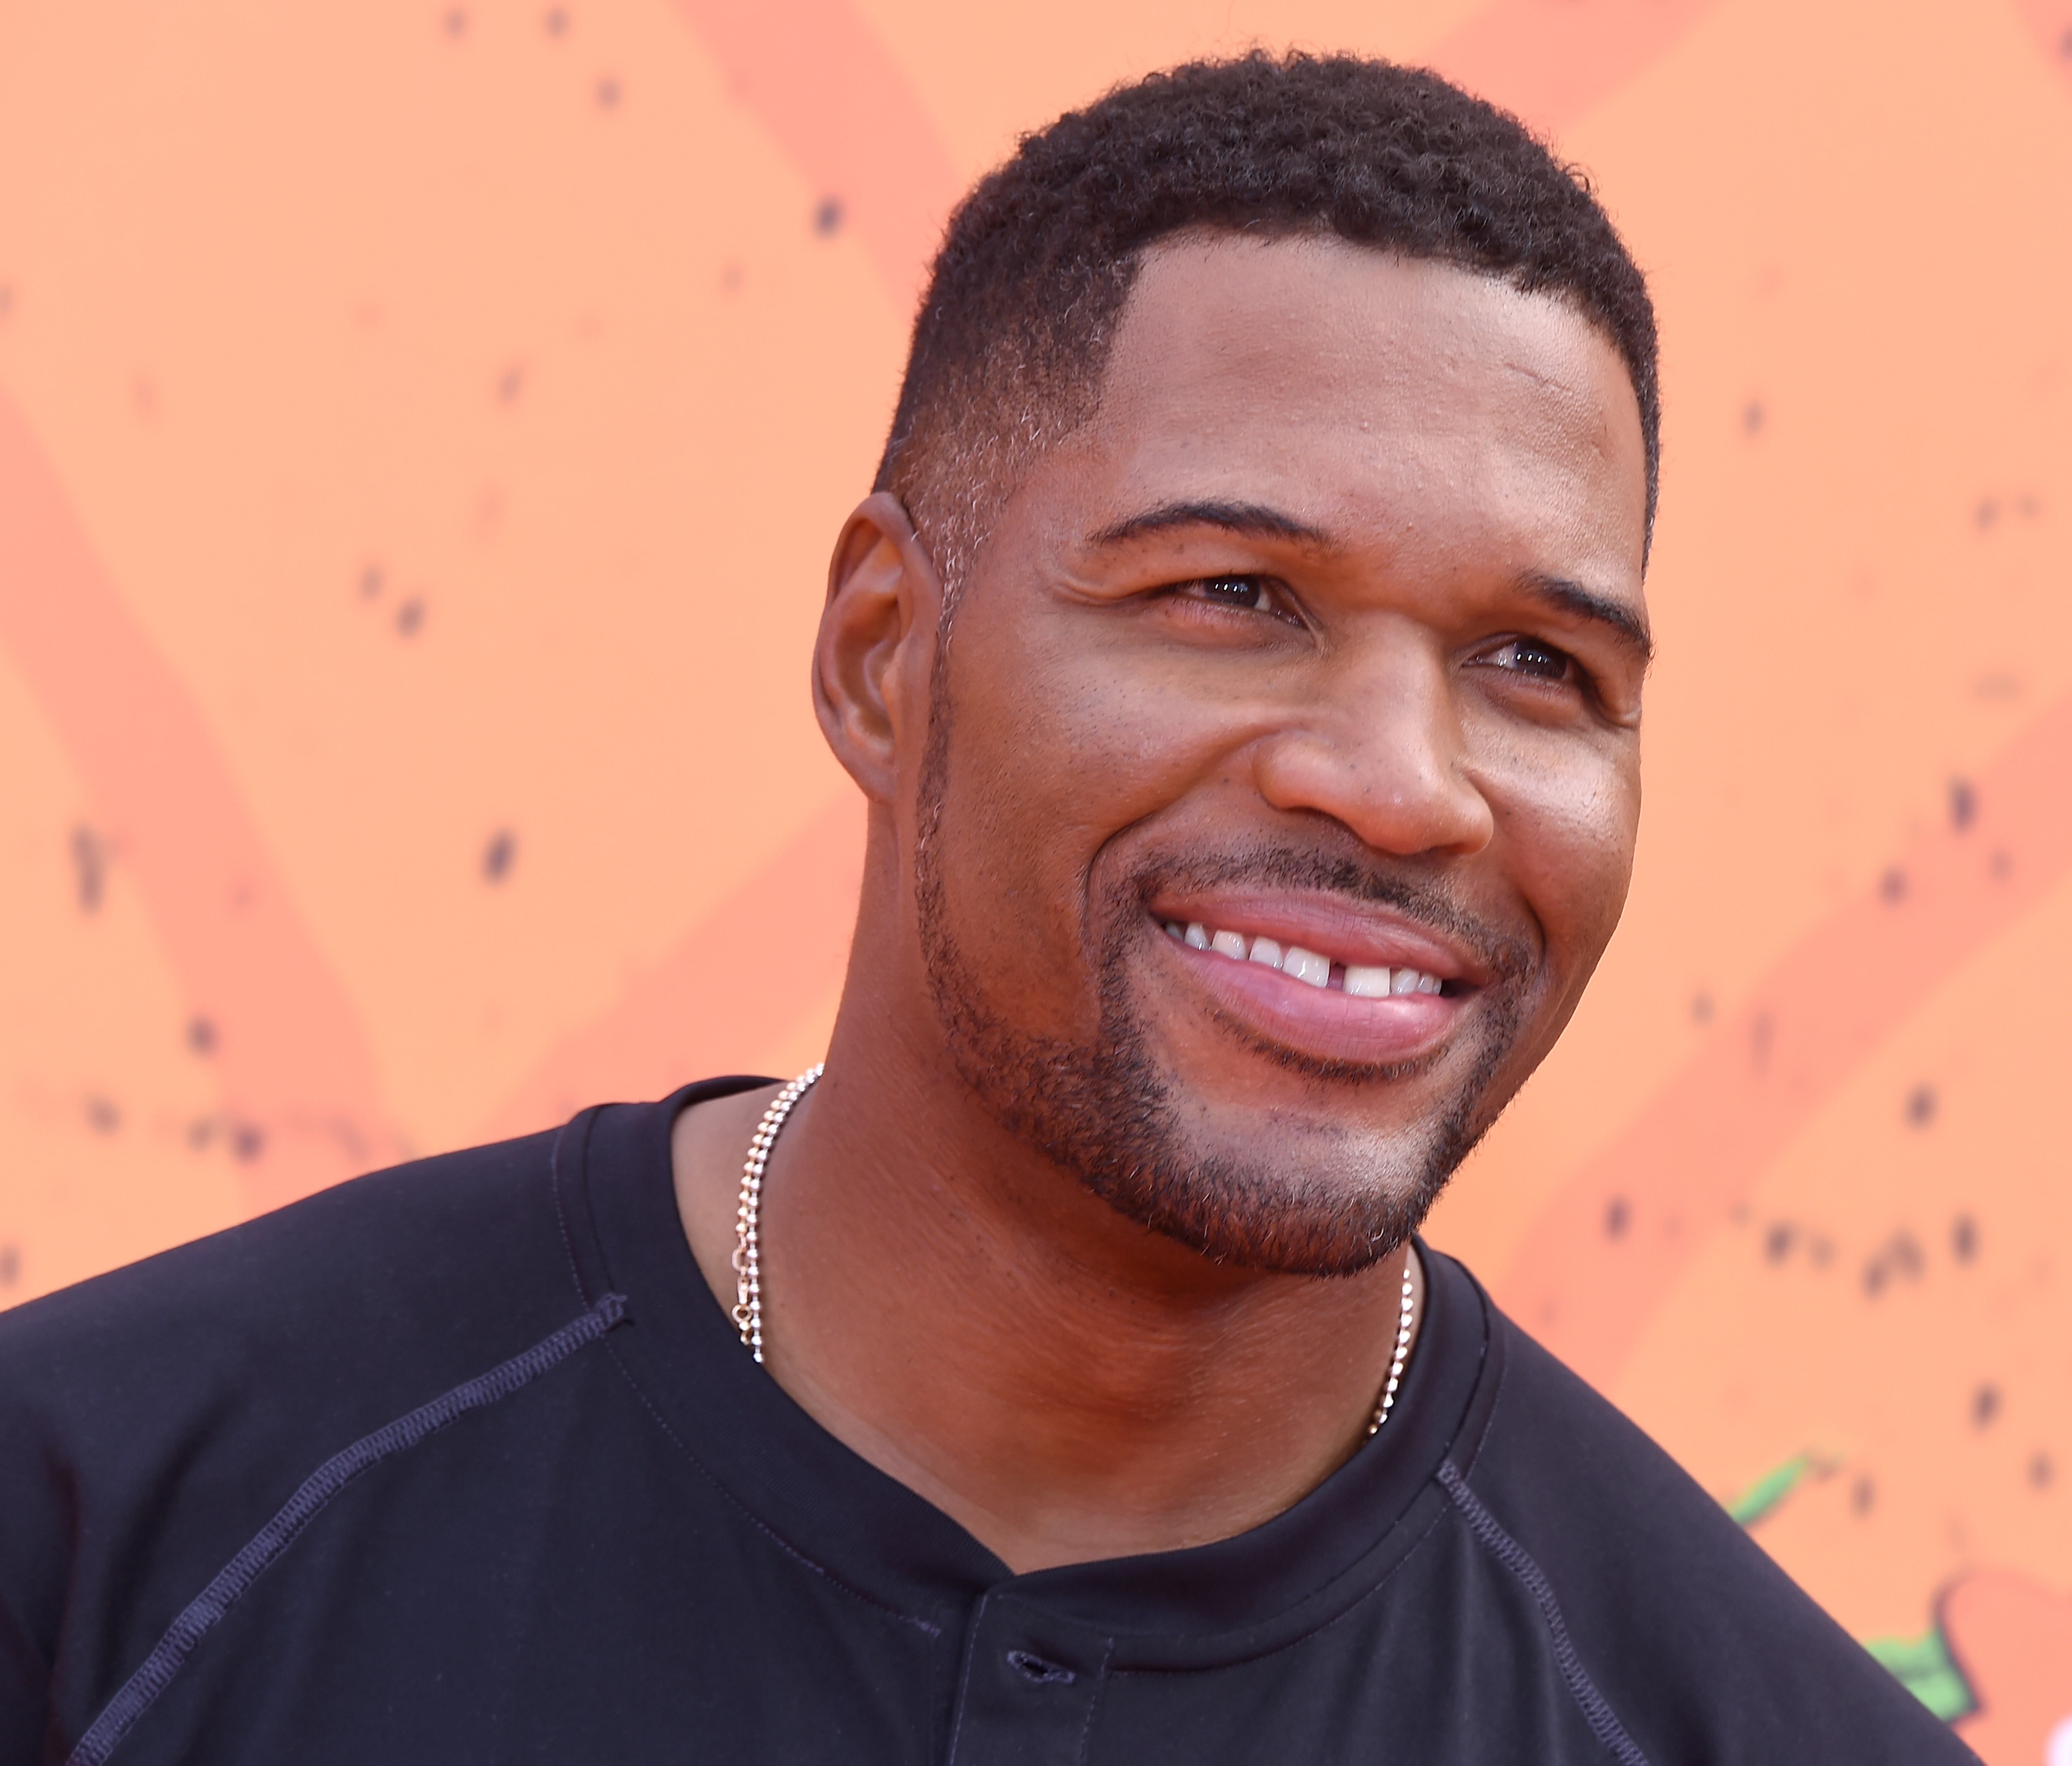 Michael Strahan arrives at Nickelodeon Kids' Choice Sports Awards 2016 at UCLA's Pauley Pavilion on July 14, 2016 in Westwood, California.